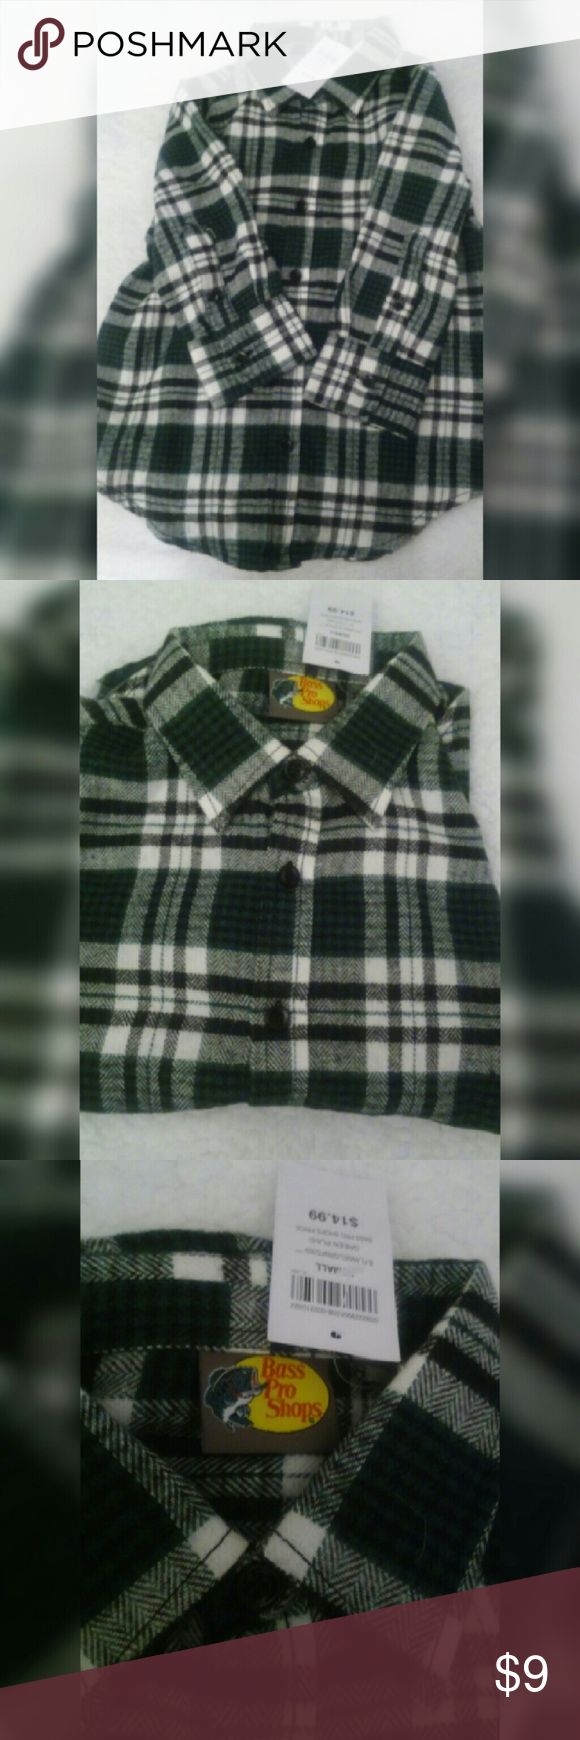 Boy Flannel green plaid Color green plaid Size XSmall New Brass Pro Shop Shirts & Tops Tees - Long Sleeve